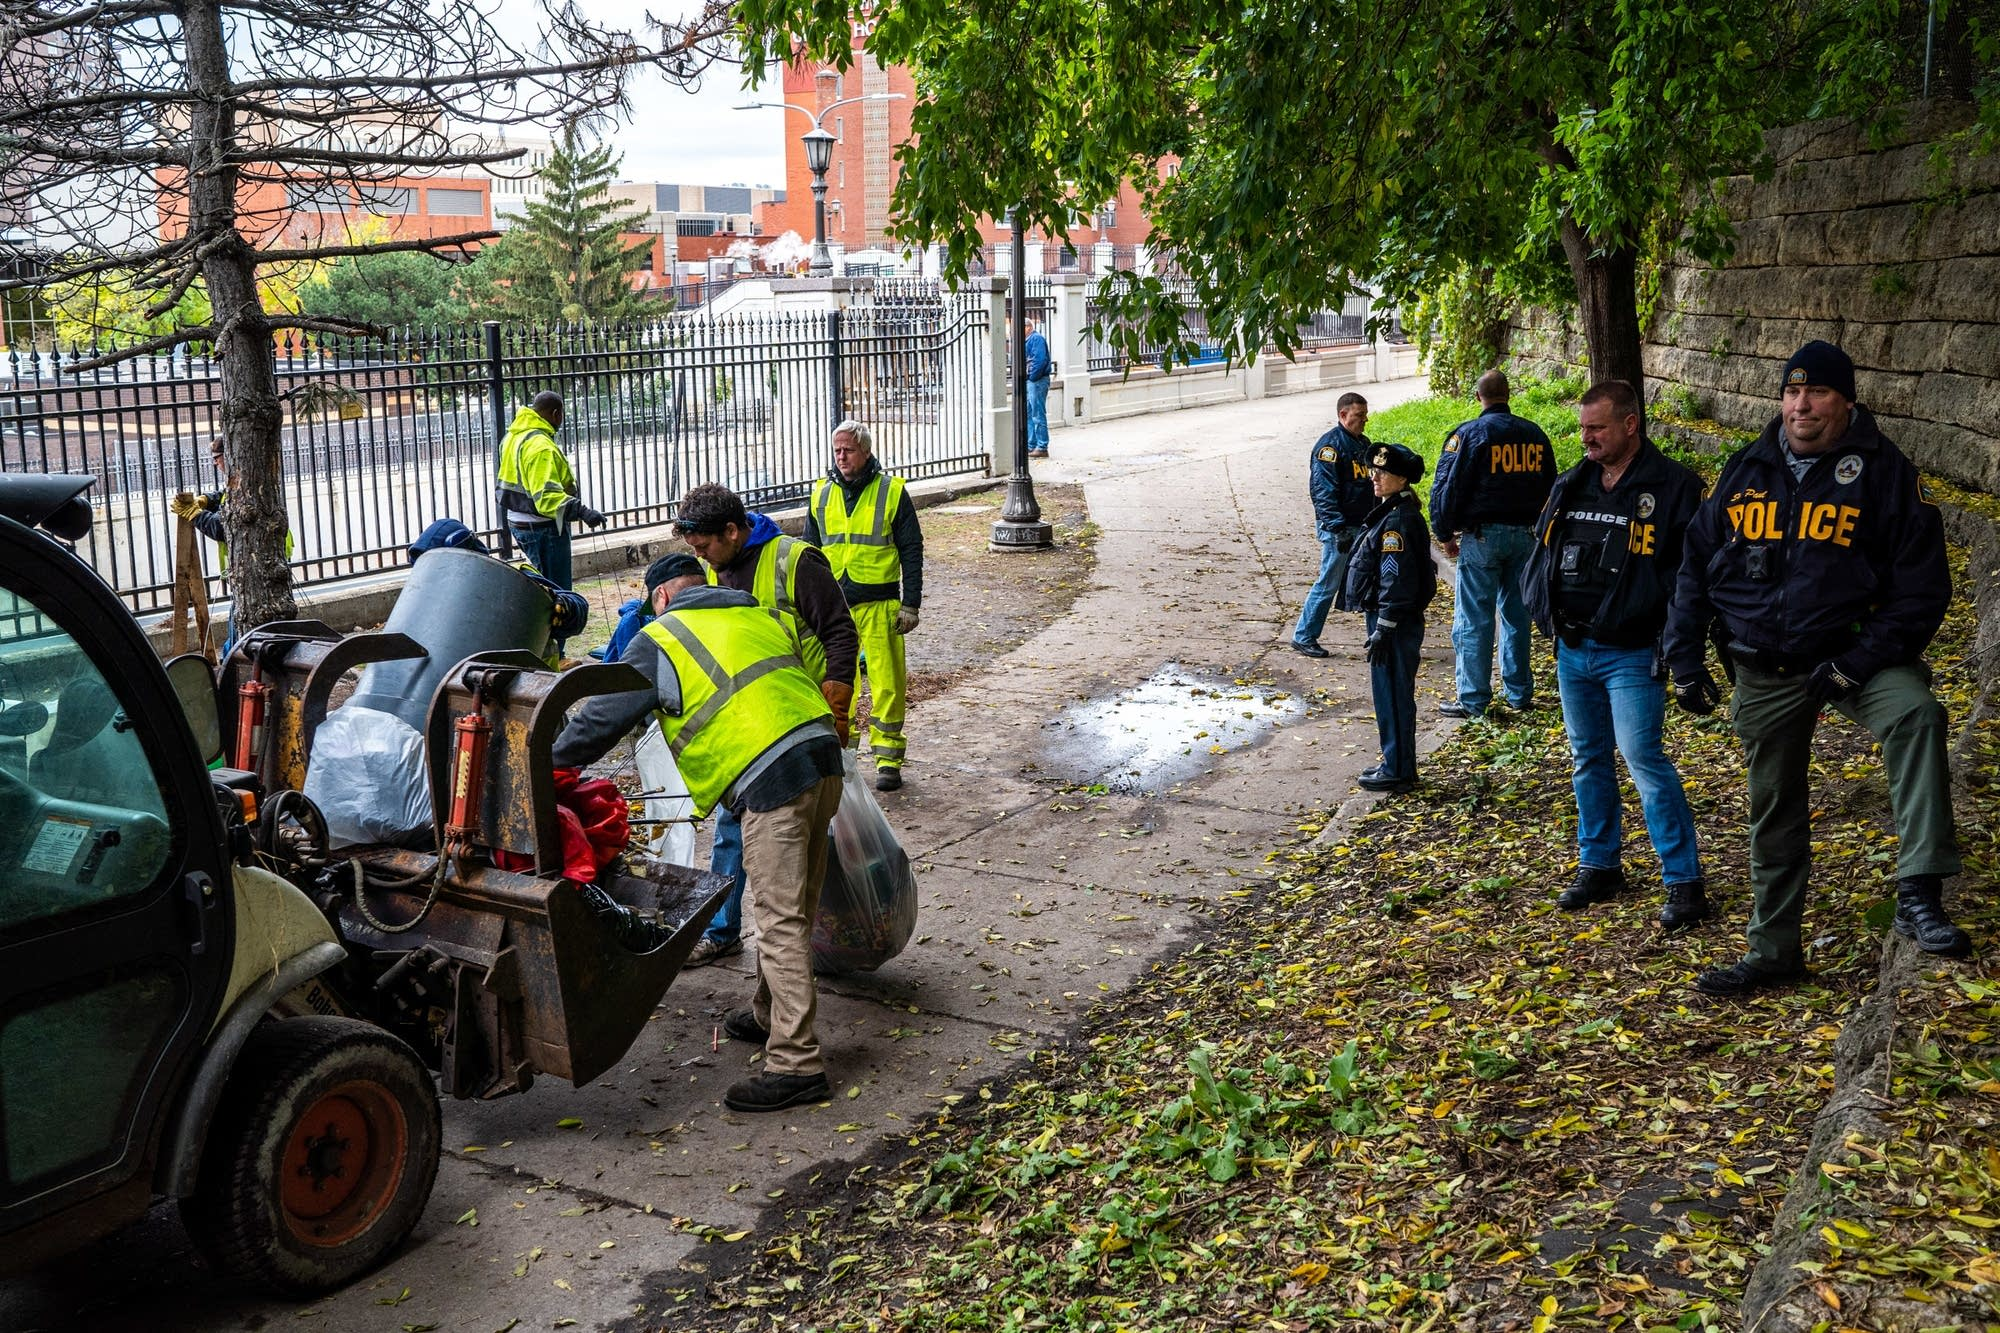 St. Paul police watch as city workers clean up trash.